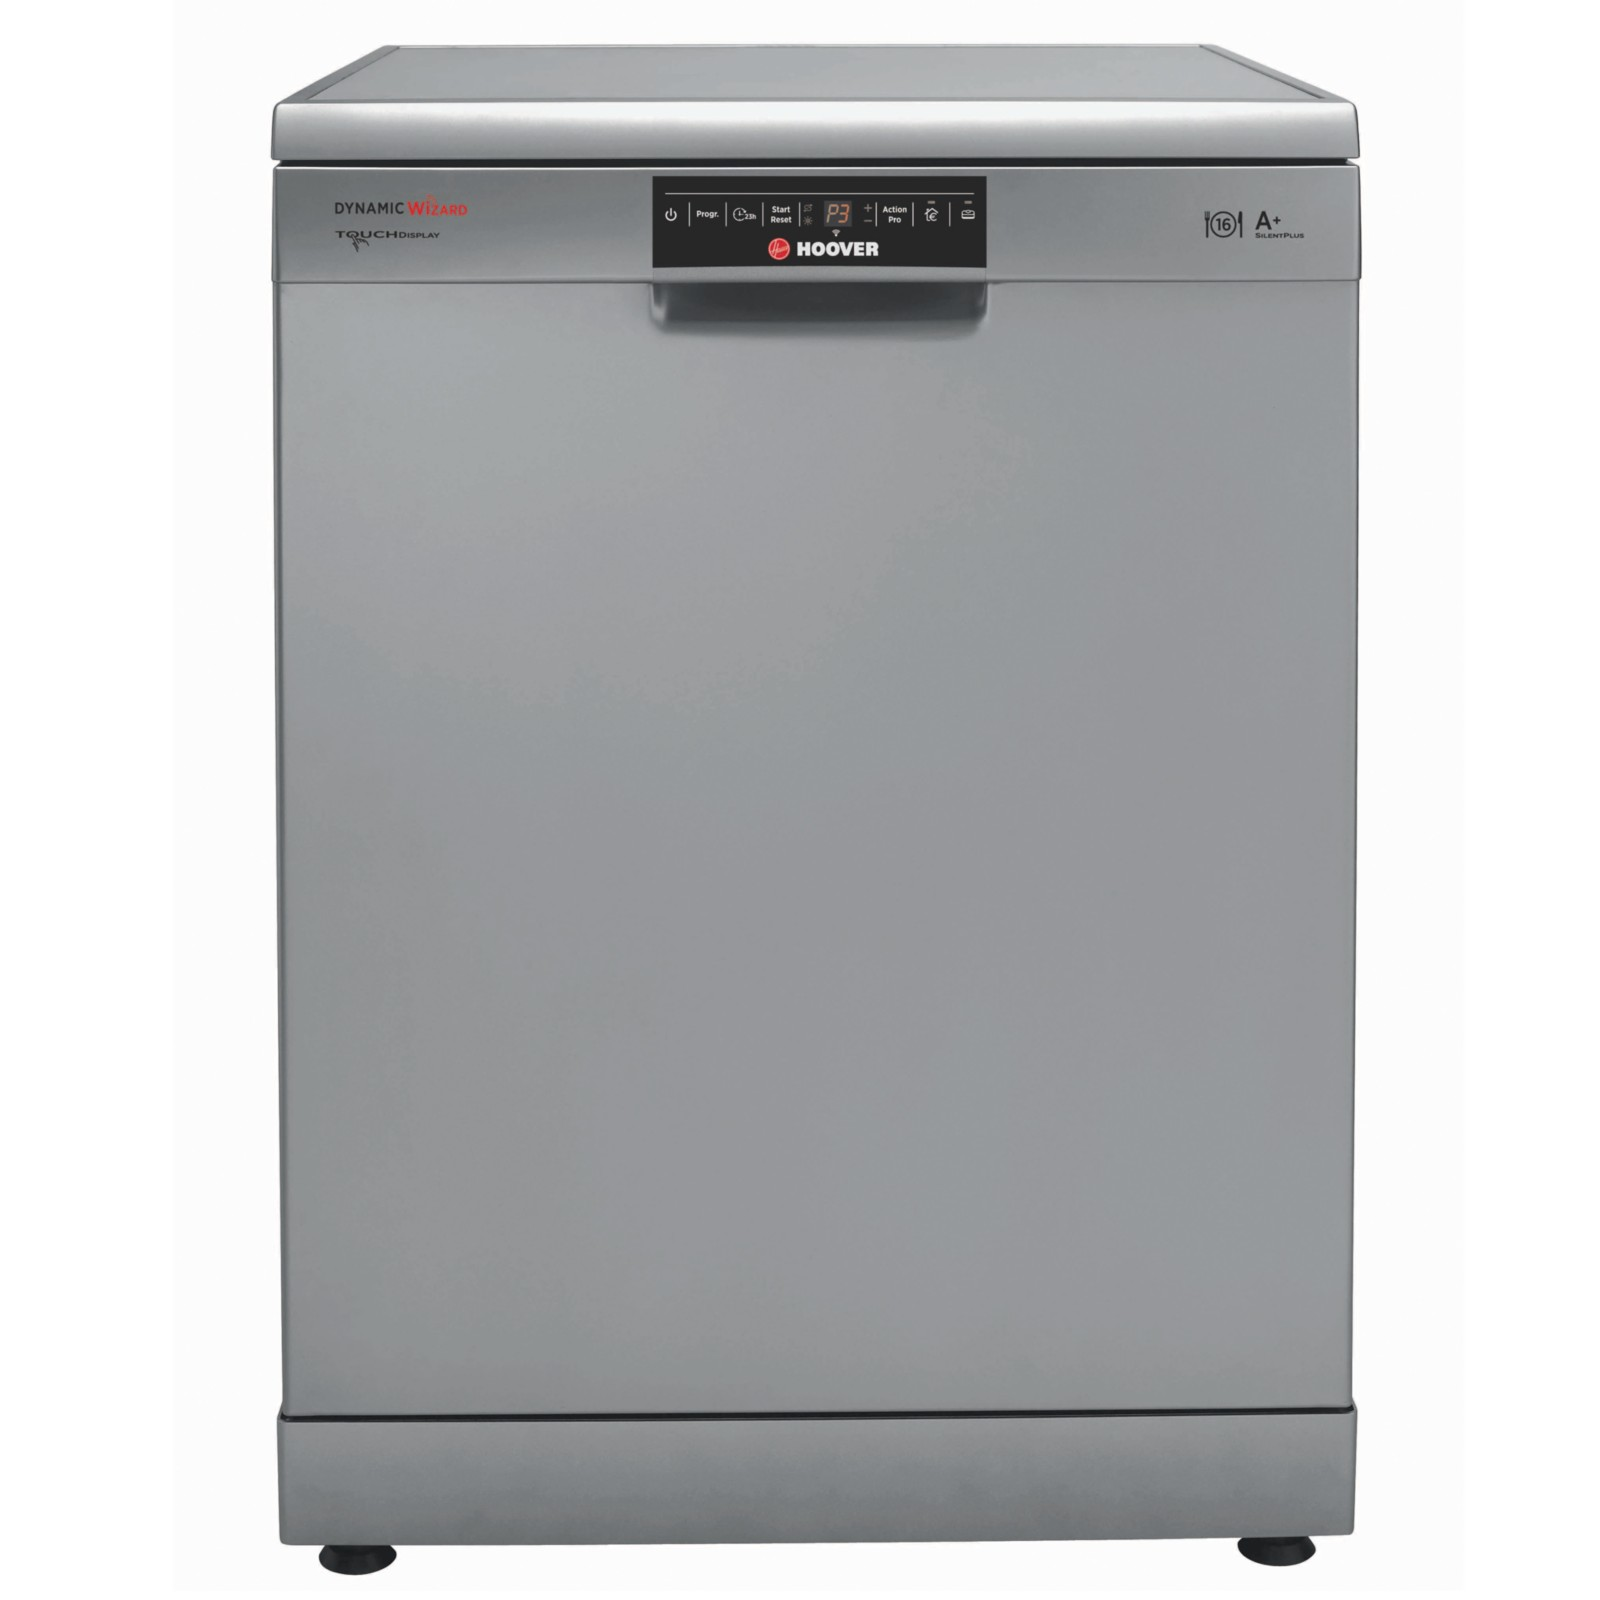 Hoover Wizard DYM 762TX Freestanding Wi-Fi Dishwasher